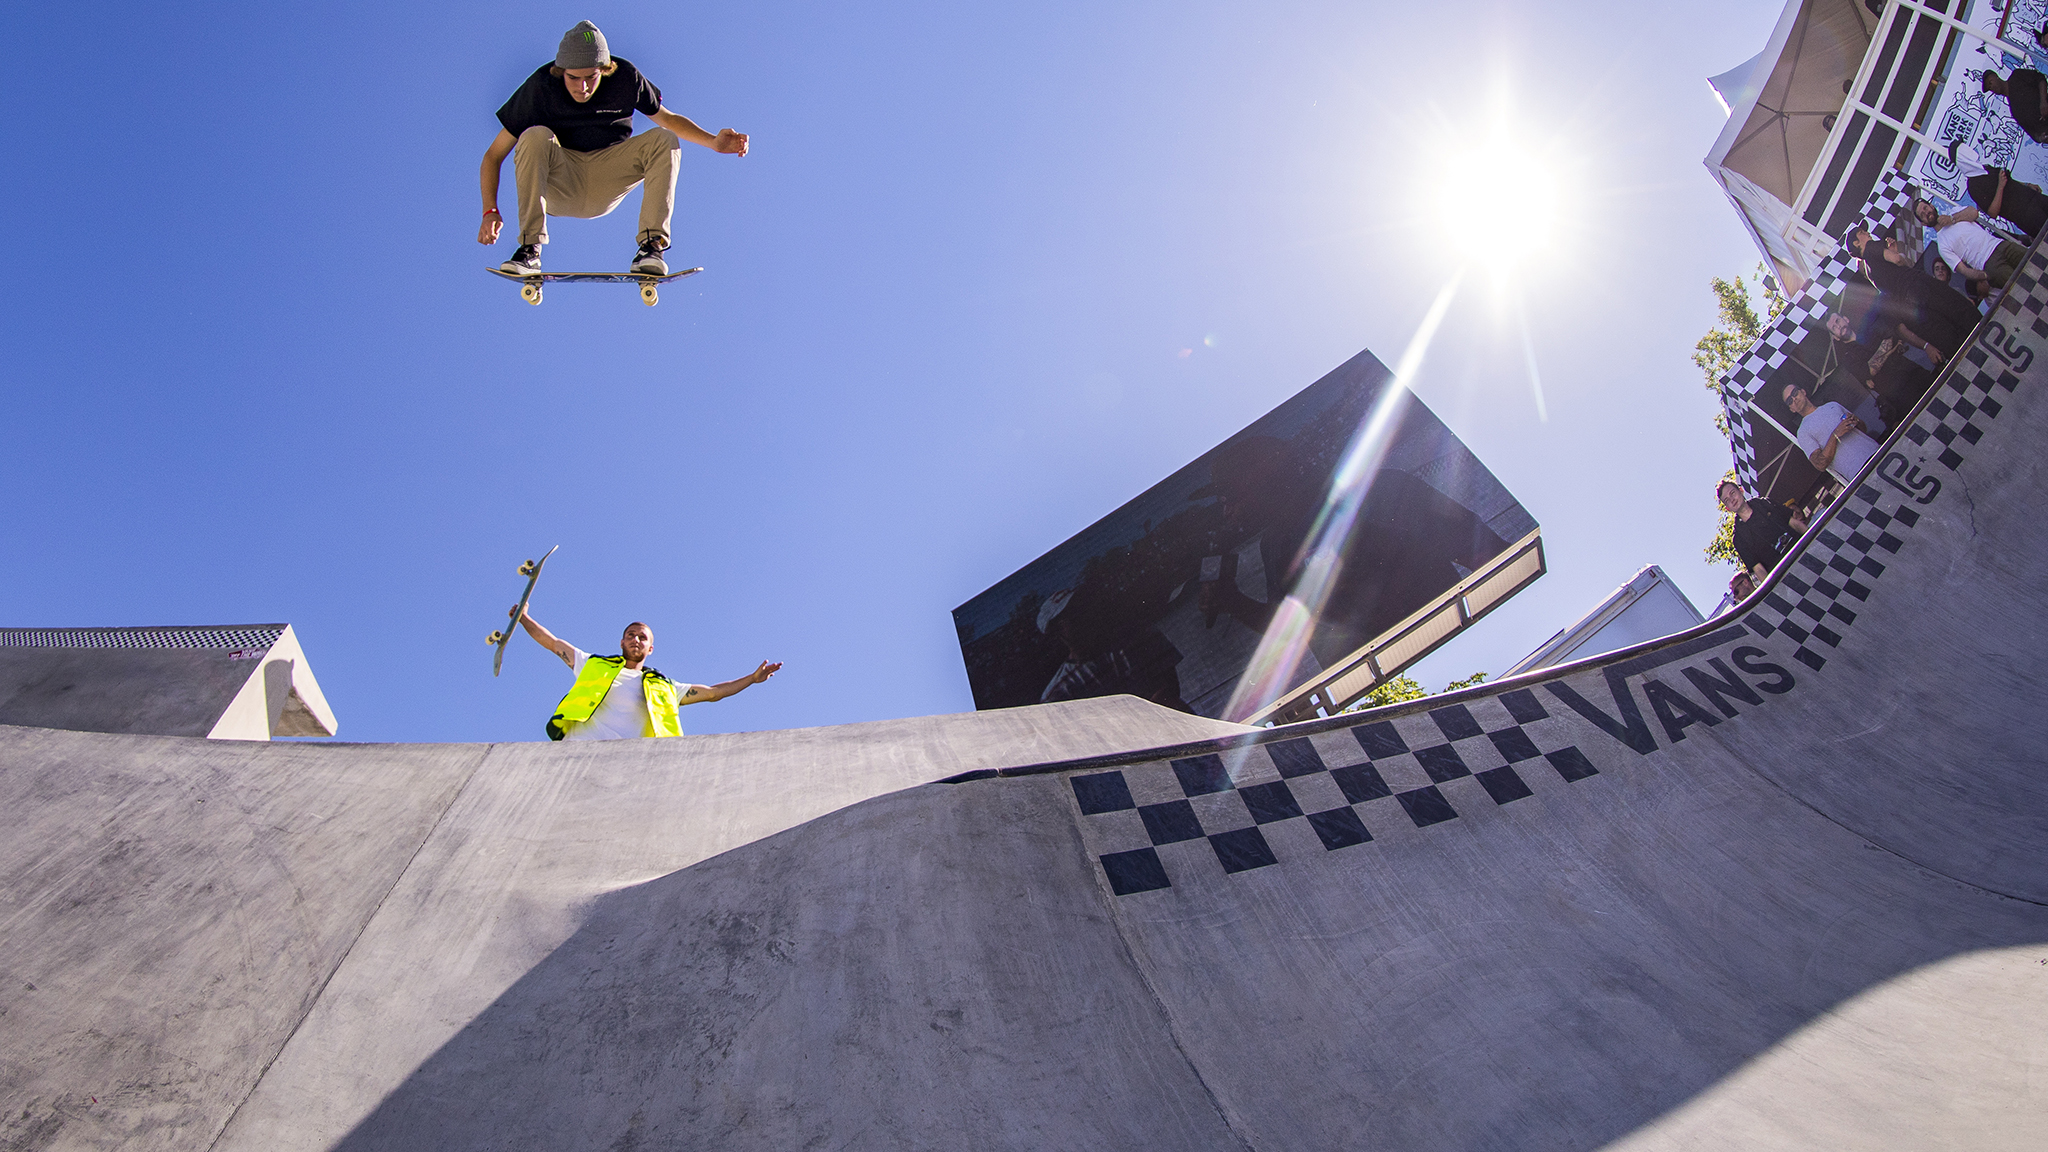 Tom Schaar comes to Minneapolis as a dual threat in Skateboard Big Air and Park.